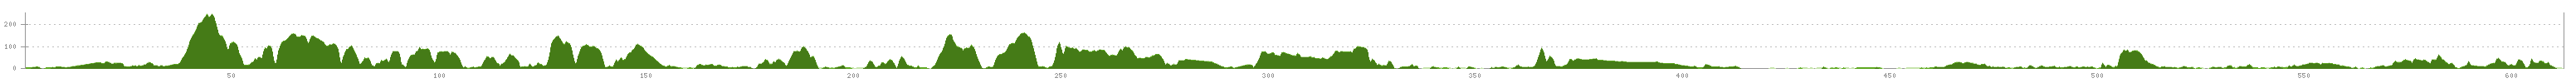 Elevation profile Cycle Tour Lissabon - Caminha